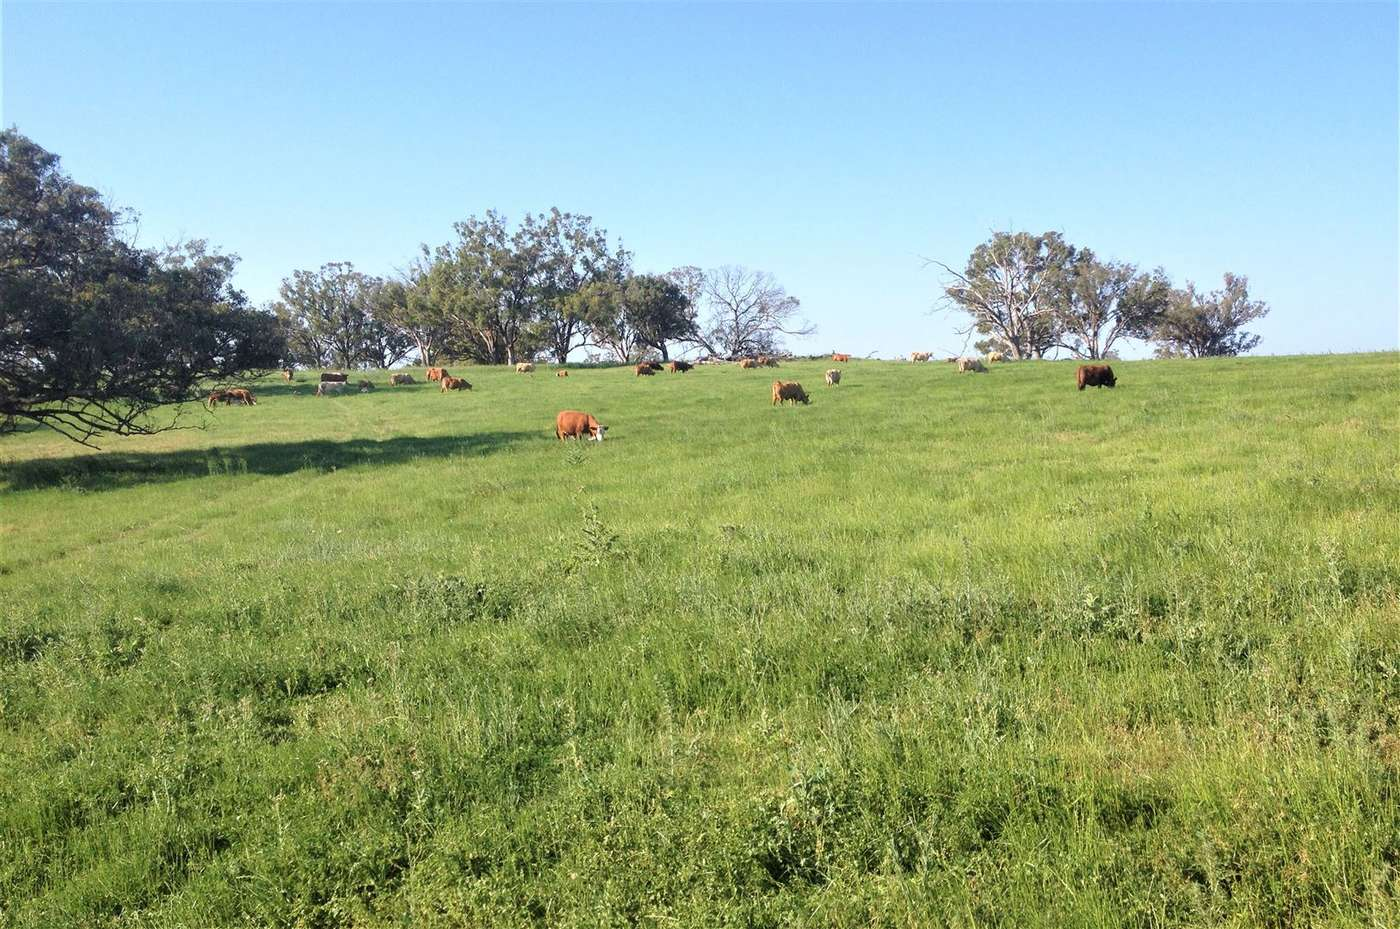 Cloven Hills', Neilrex Rd, Coolah, NSW 2843 Rural Propety - Homely